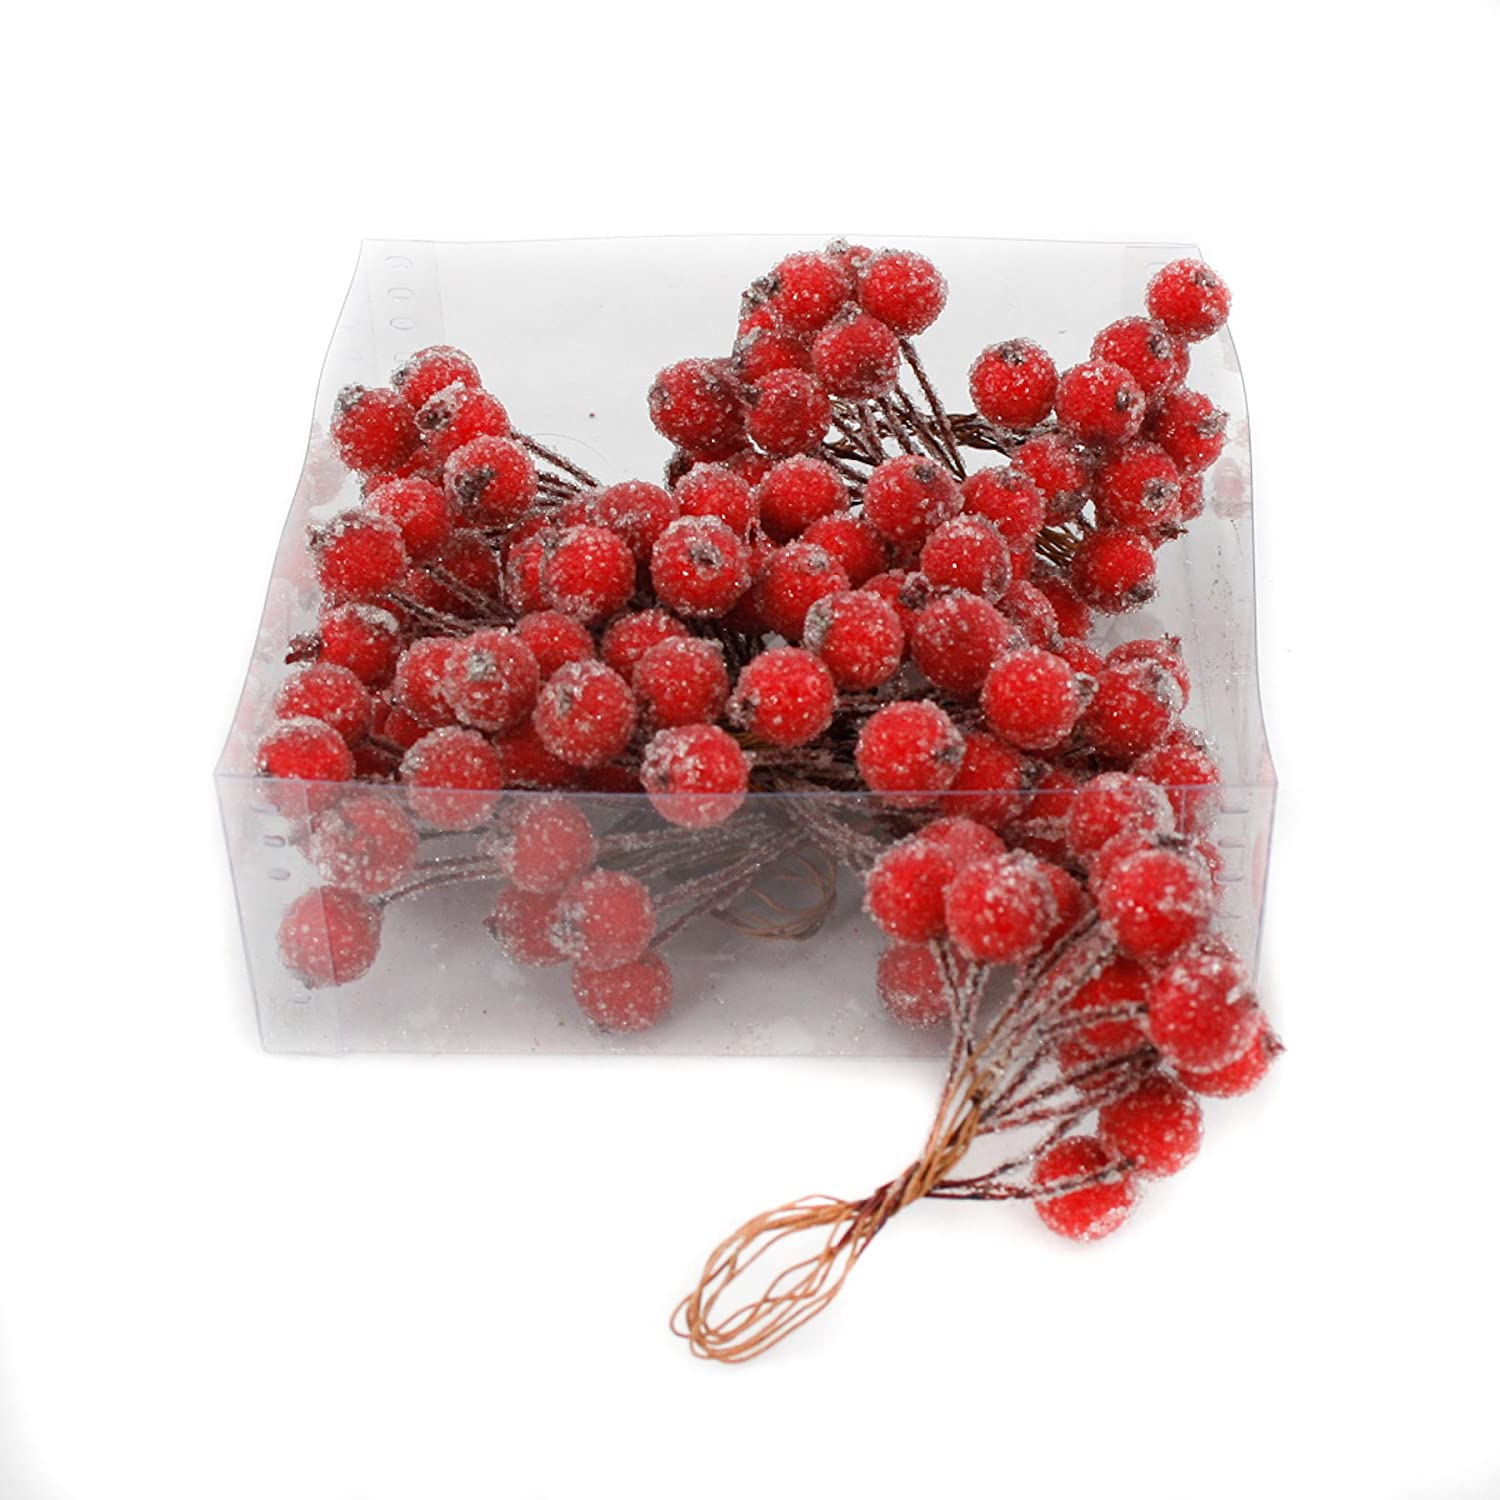 Artificial Burgundy Red Frosted Holly Berries 12mm (x 120) on wire for Christmas craft use